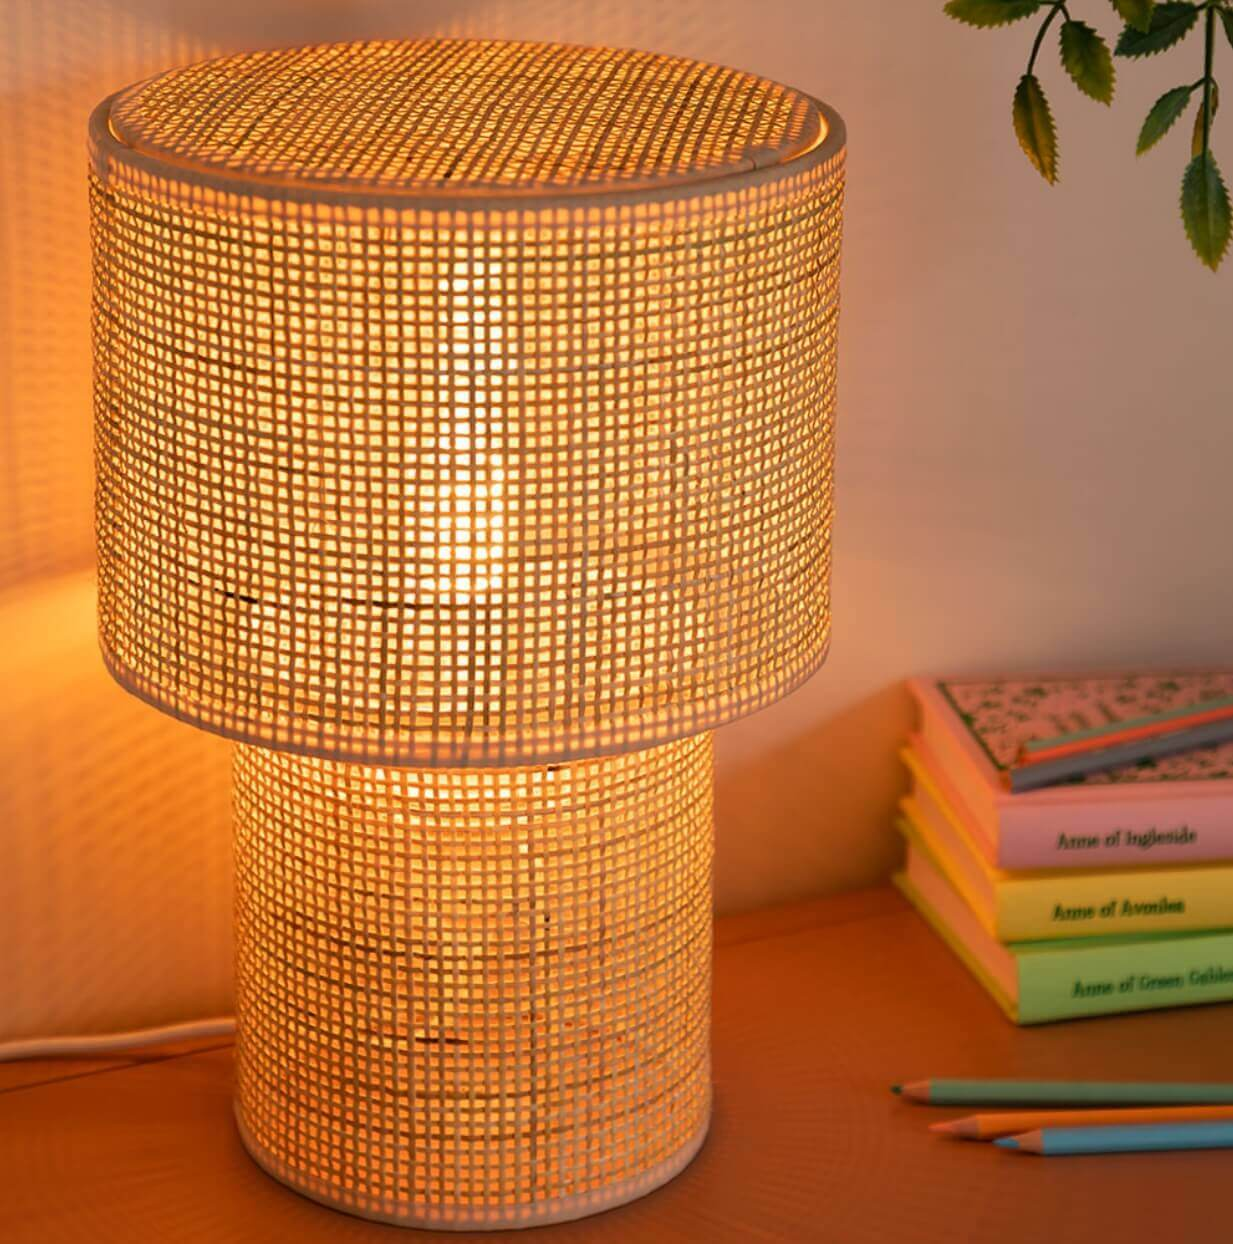 A rattan table lamp.